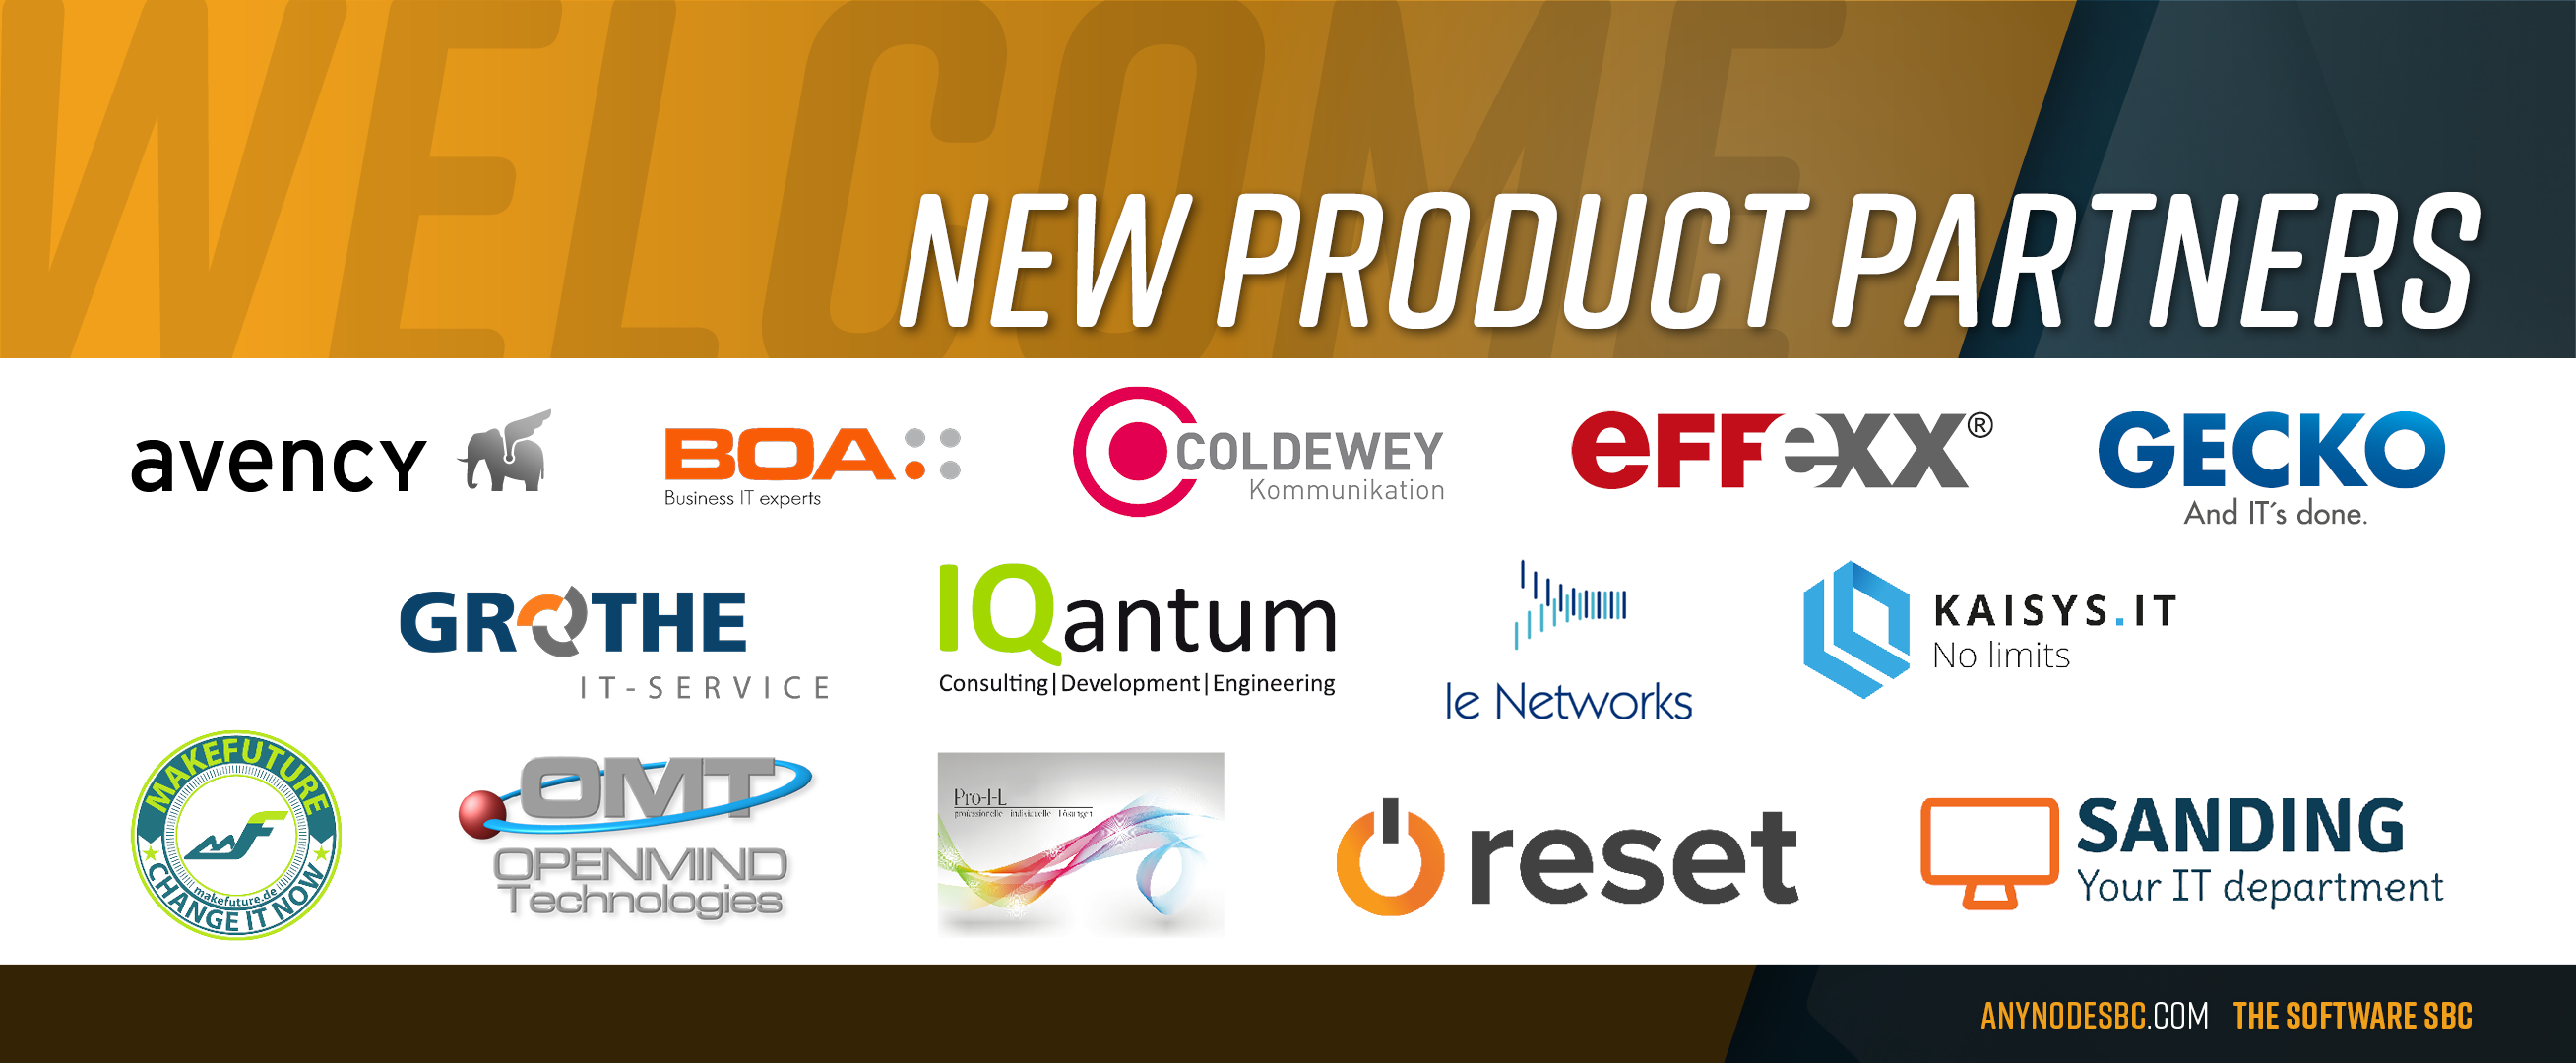 New anynode Product Partners in August 2020!